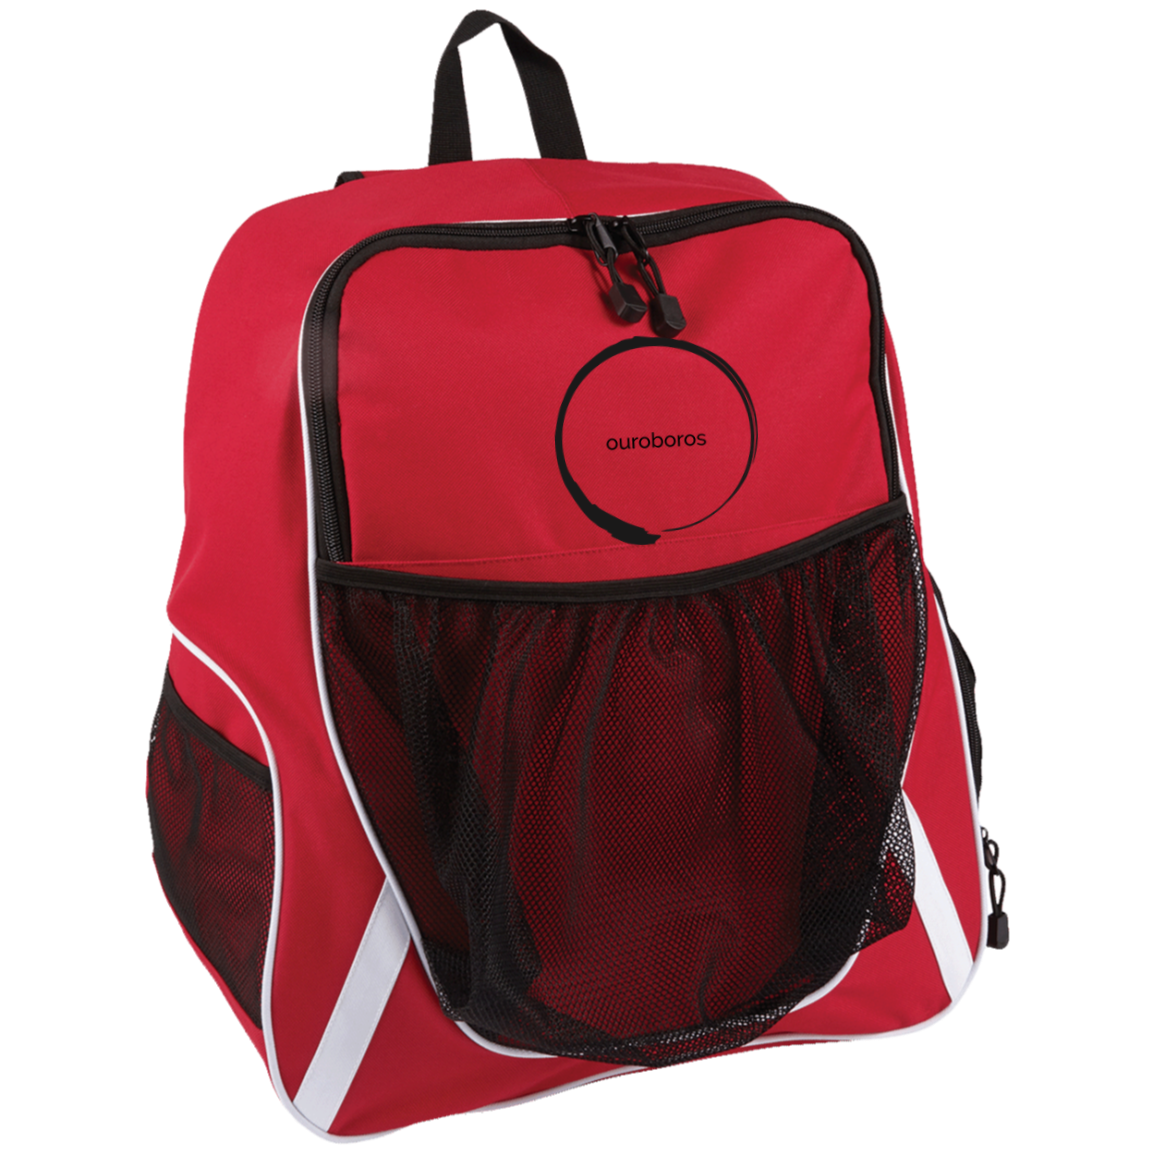 Ouroboros Equipment Bag